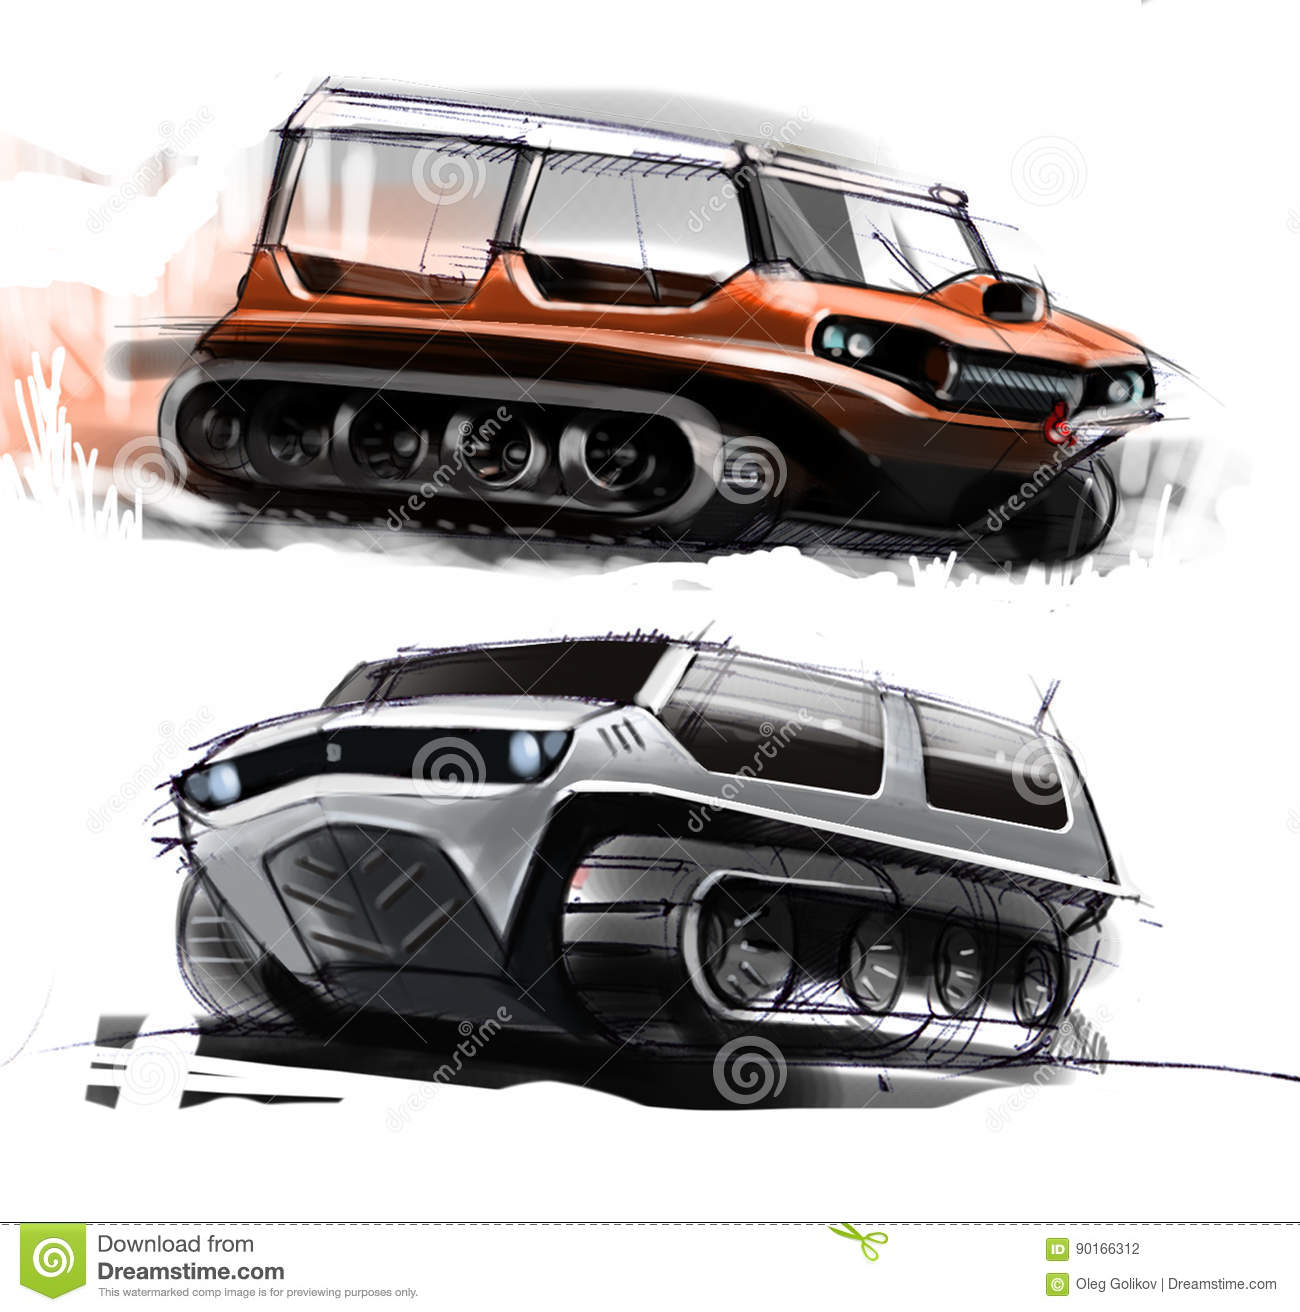 Sketch Design Concept Of Cross Country Off Road Vehicle Illustration Stock Illustration Illustration Of Traces Active 90166312